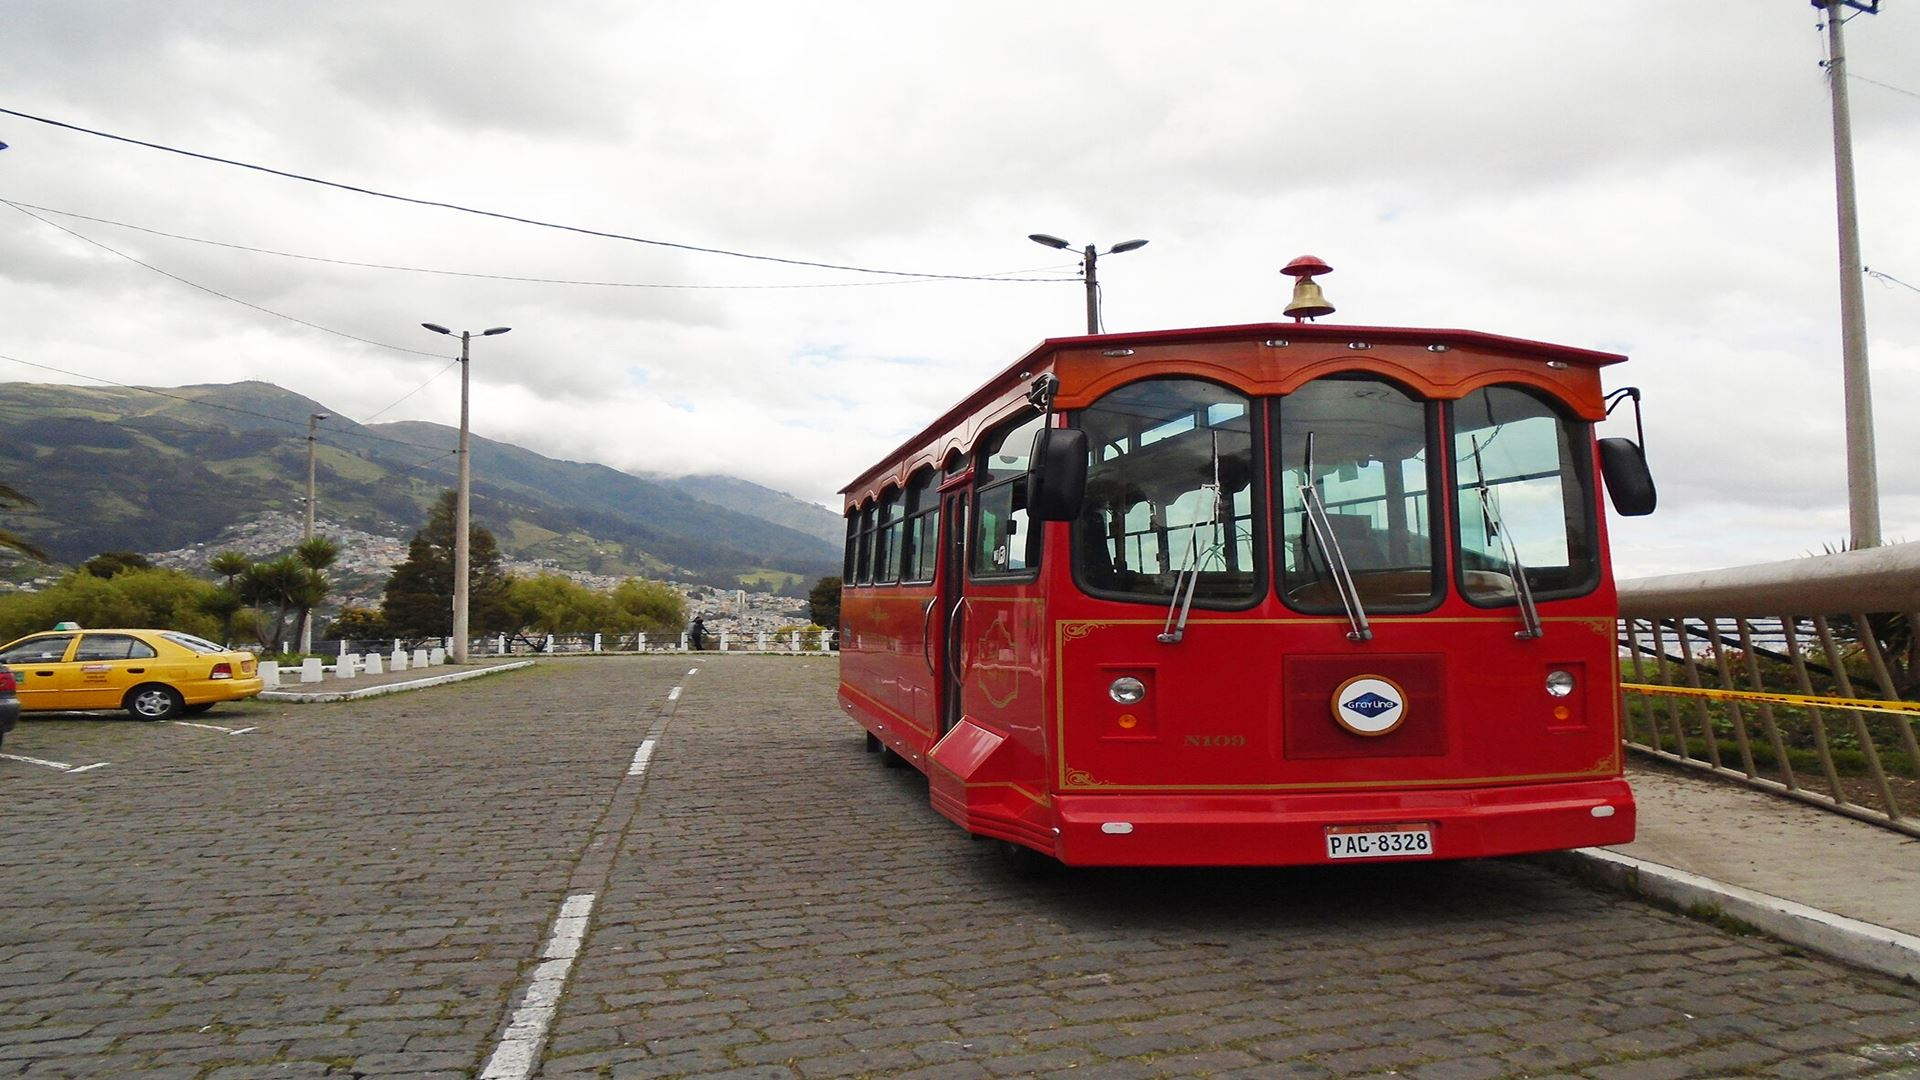 QUITO CITY TOUR AND HALF OF THE WORLD IN SHARED